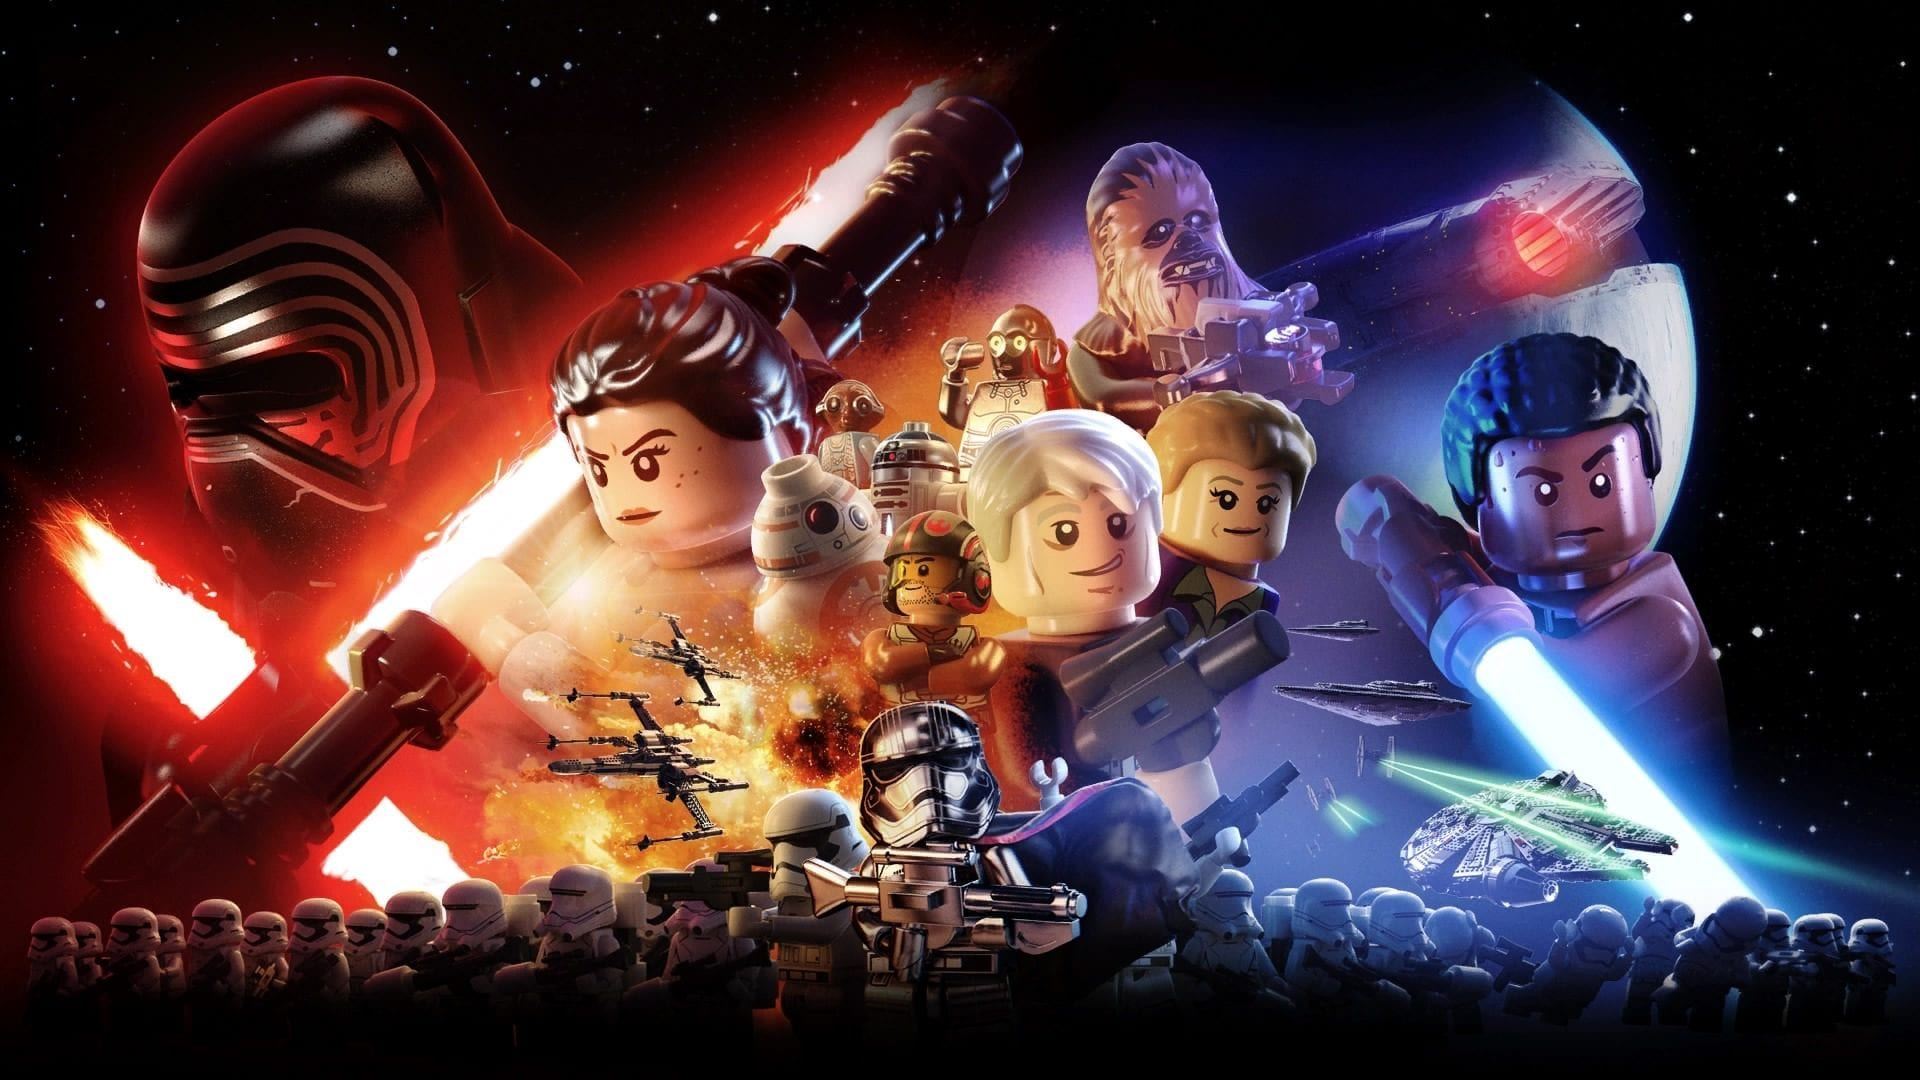 Lego Star Wars The Force Awakens Receives Two New Character Packs